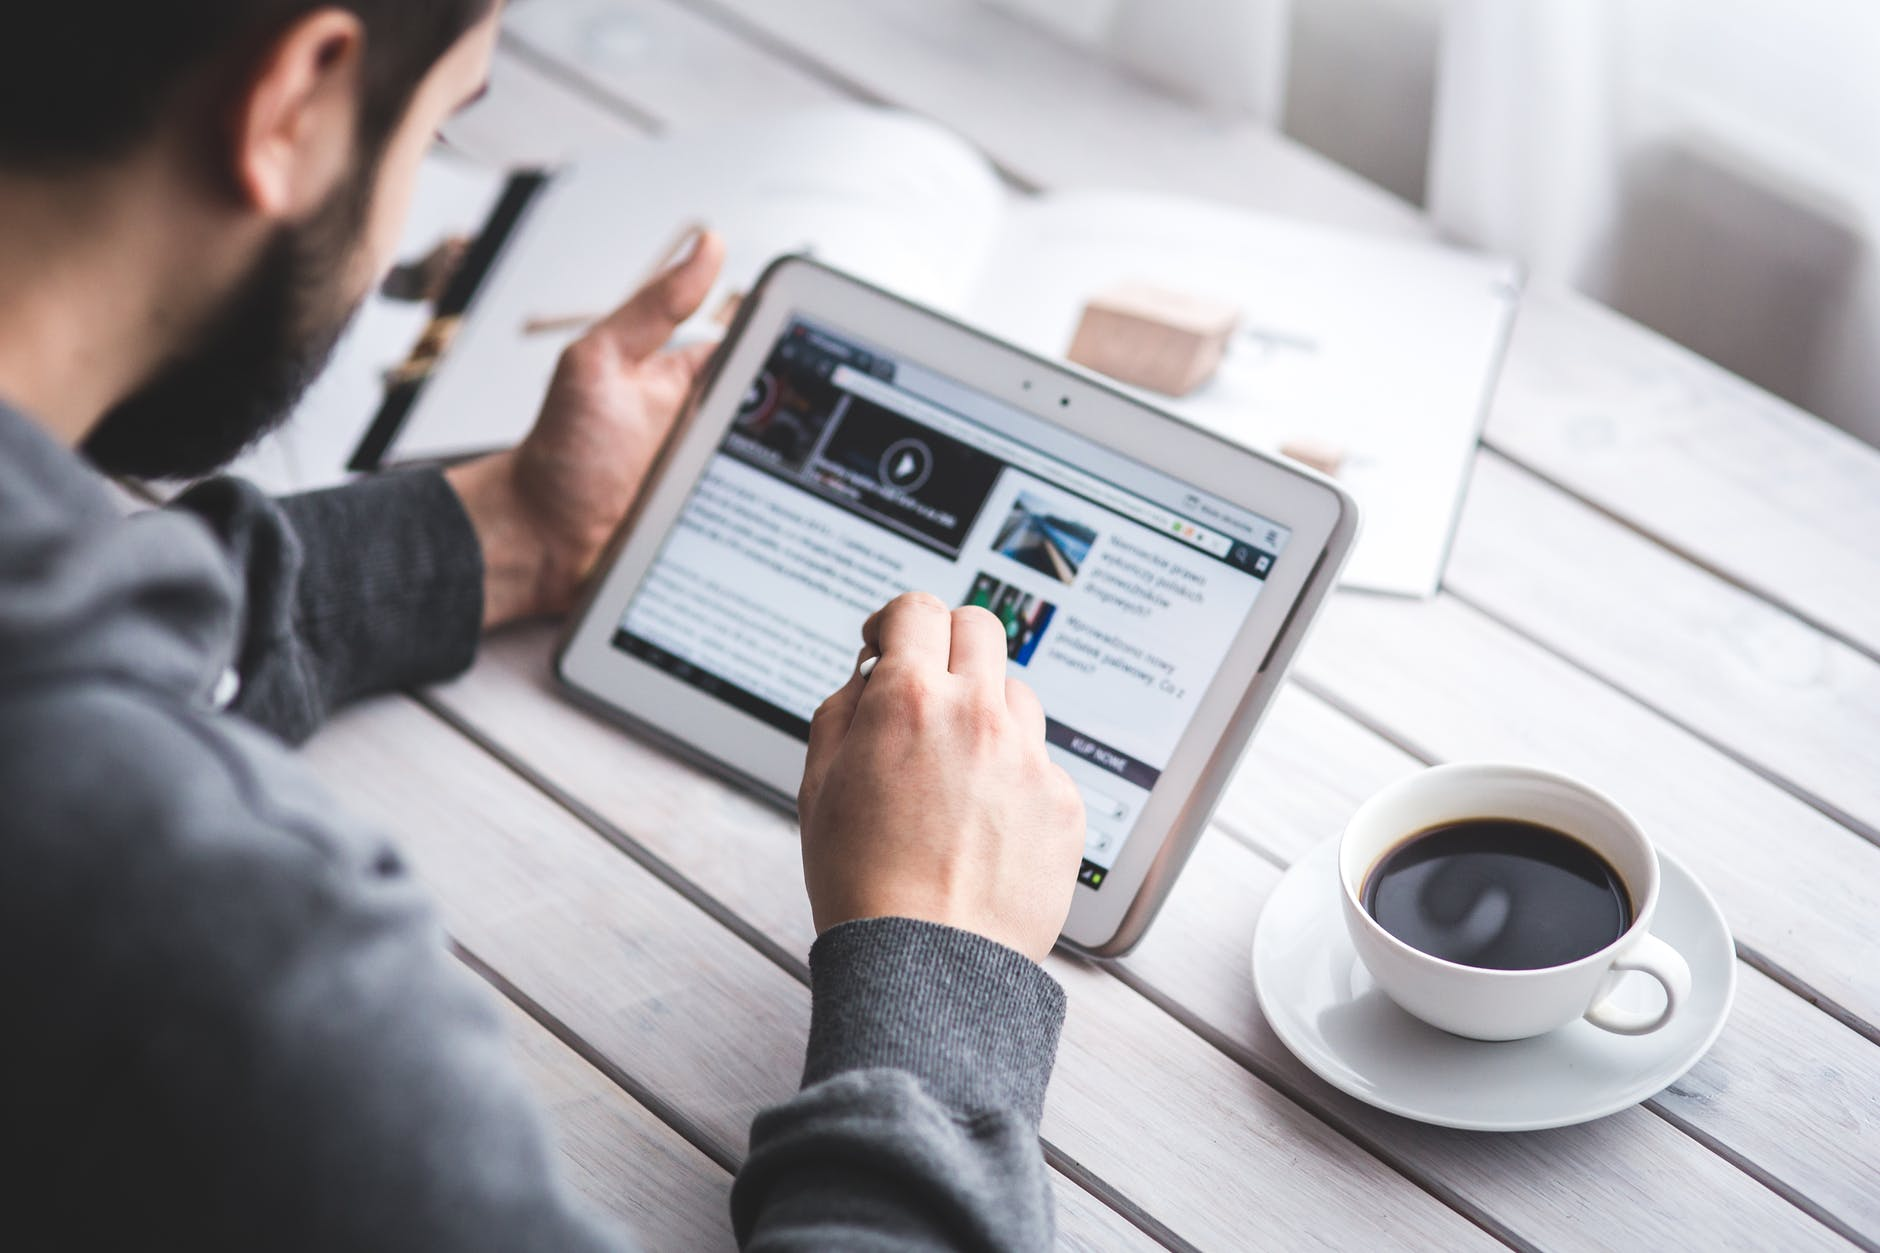 man sitting at a desk looking at ipad, a cup of black coffee next to him - cryptocurrency simplified